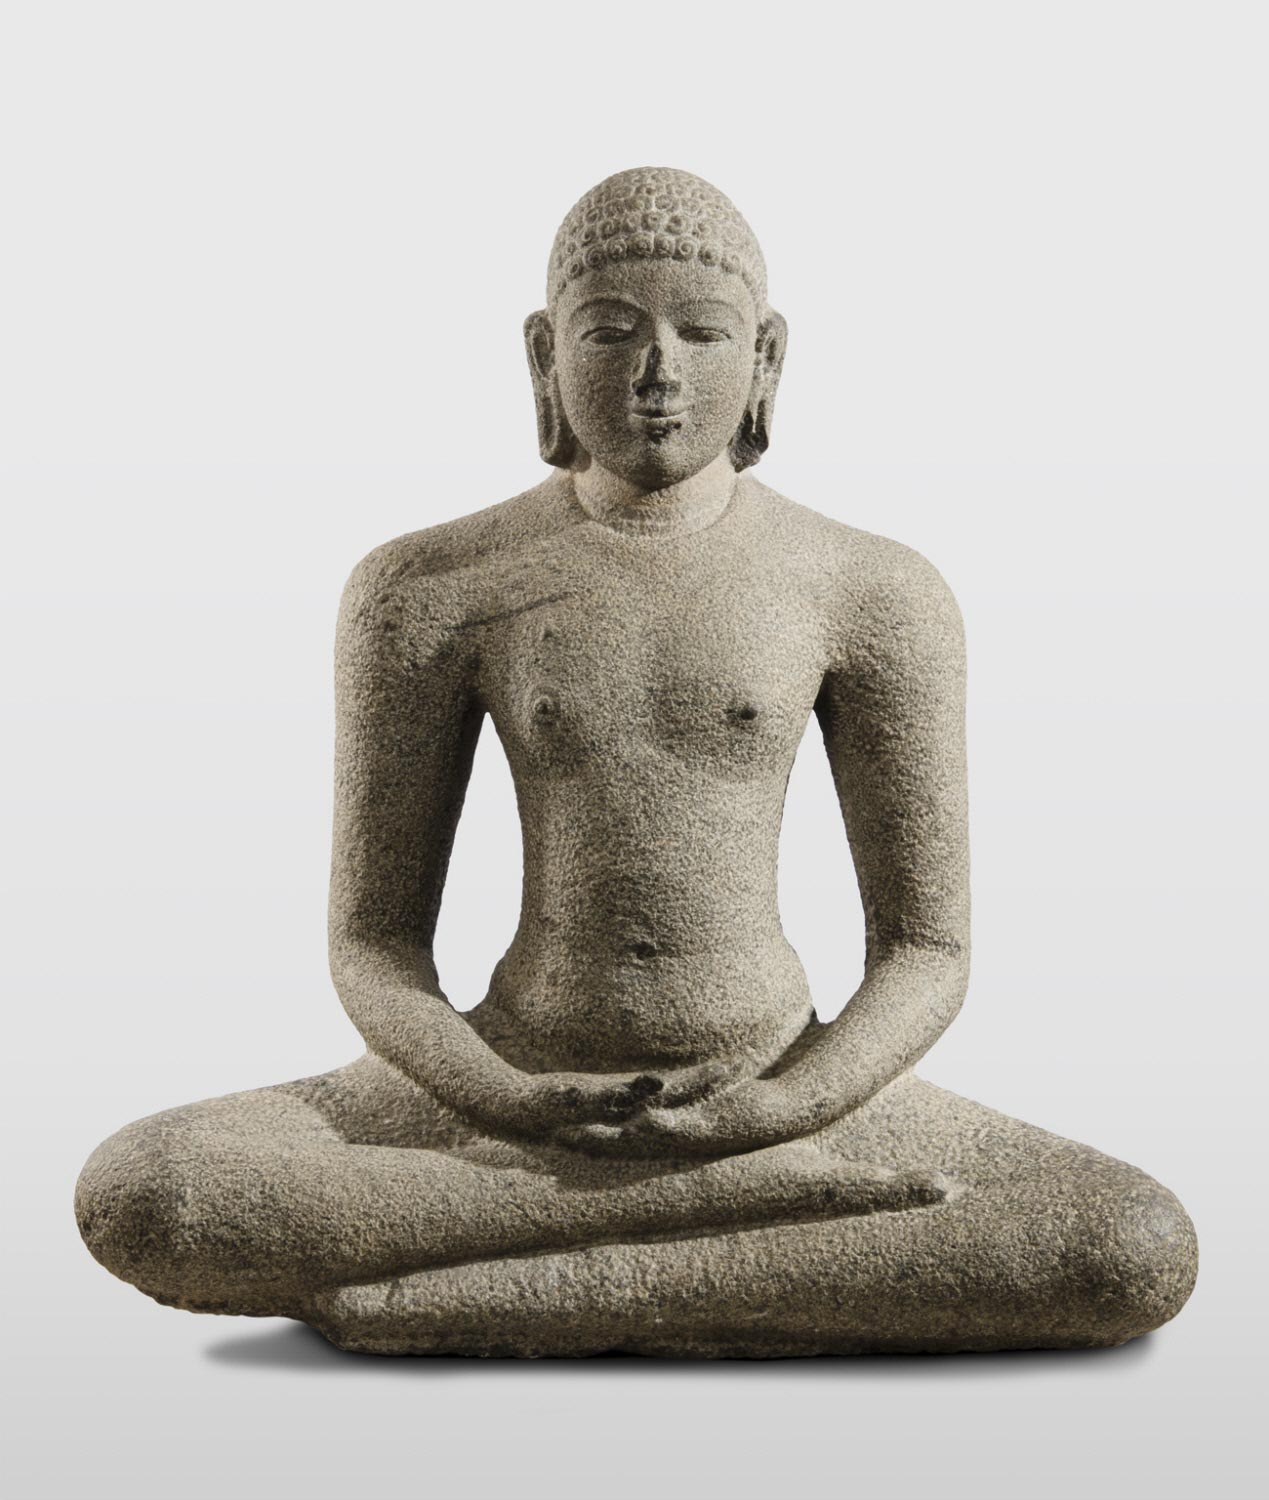 Jina (Jain Savior-Saint) Seated in Meditation